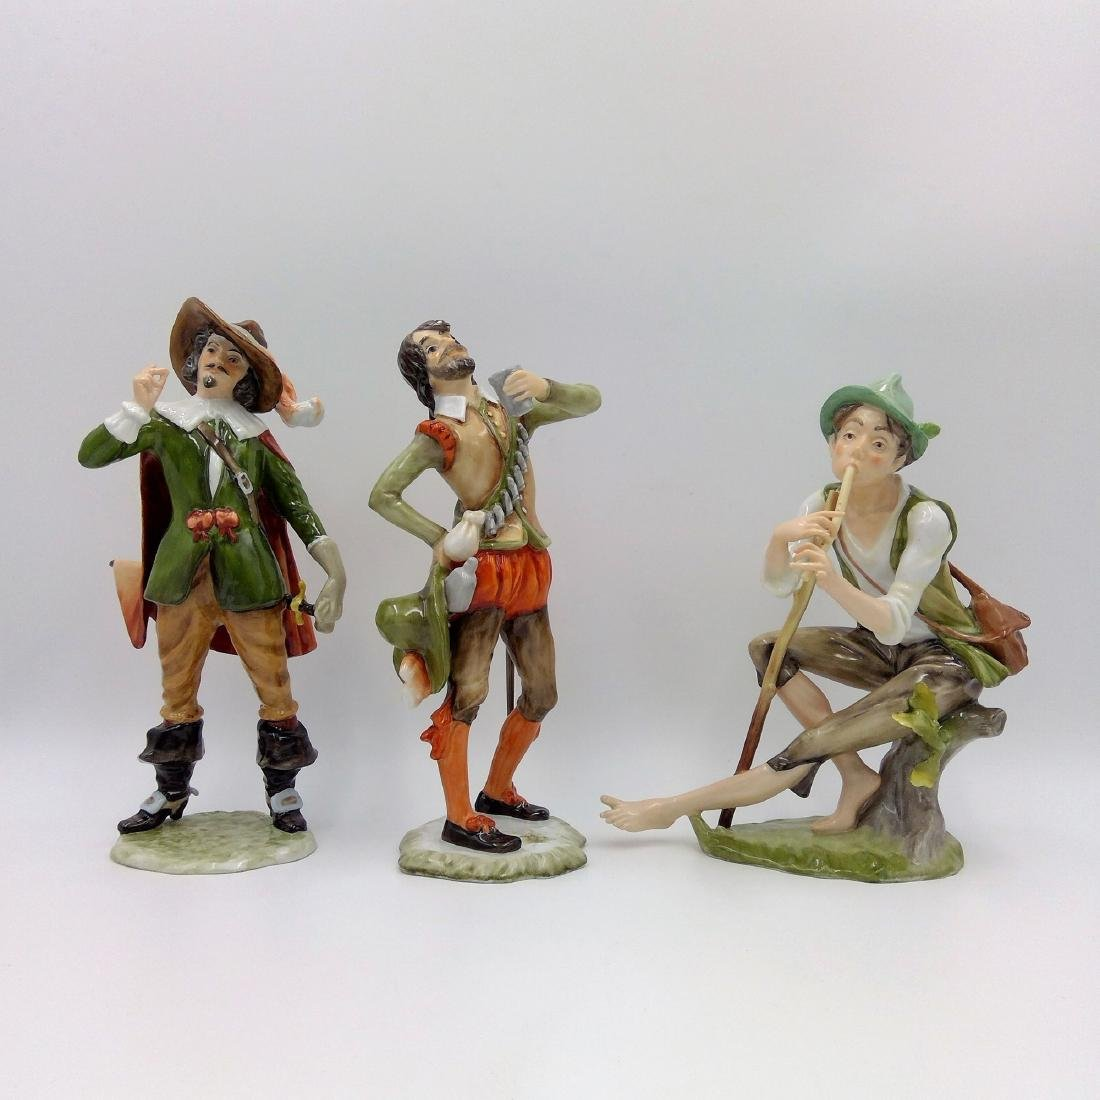 GROUP OF 3 KAISER GERMAN PORCELAIN FIGURINES